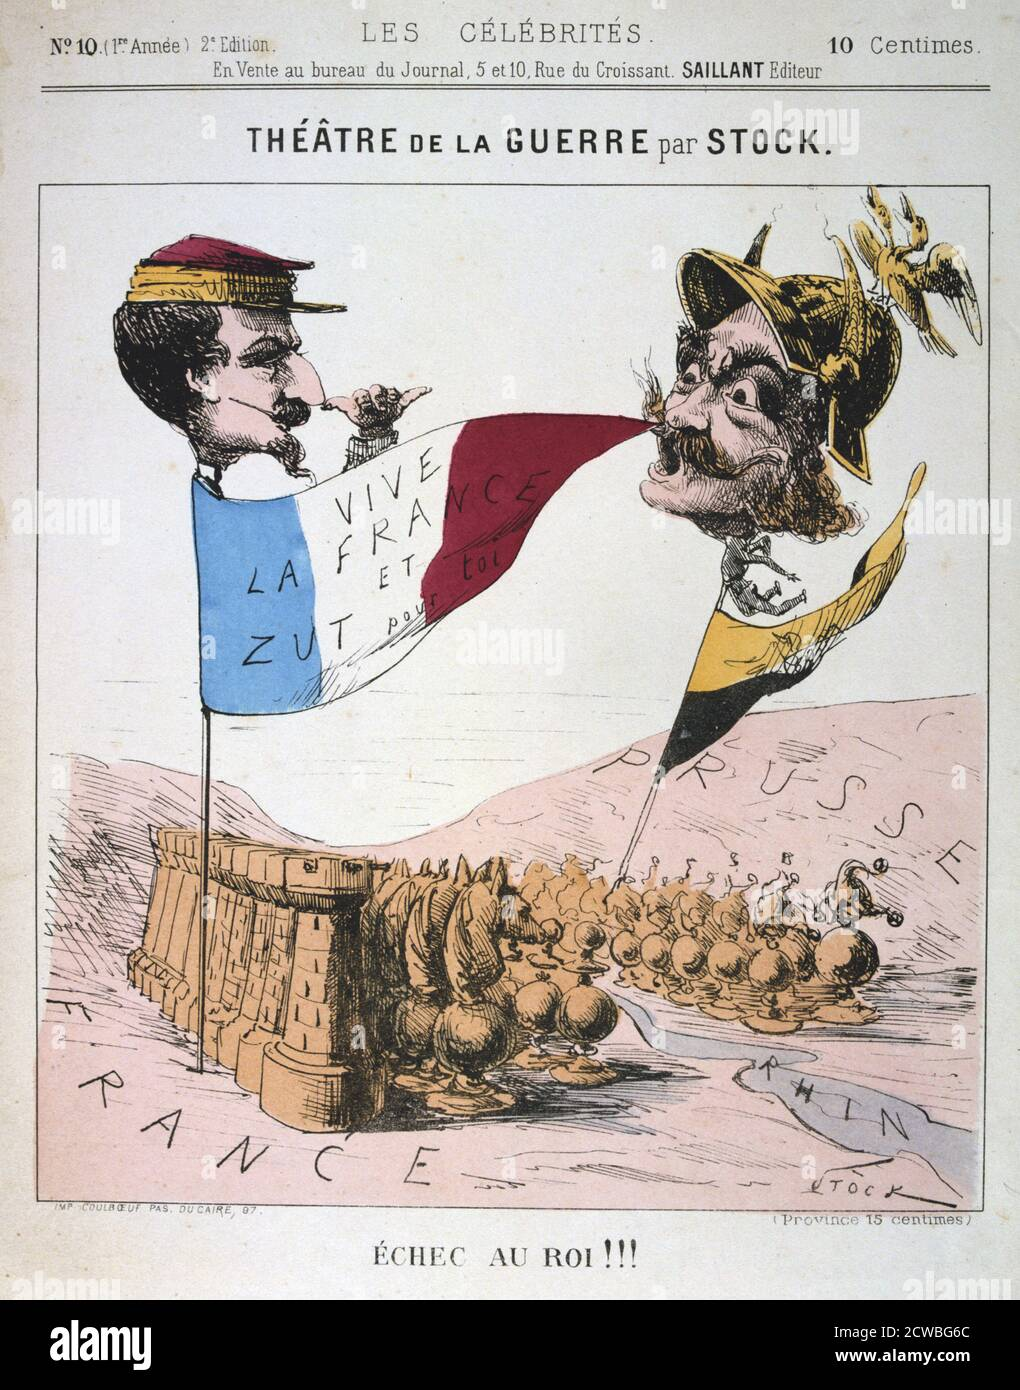 Echec au Roi', Franco-Prussian War, 1870-1871. Caricature of Napoleon III of France and Wilhelm I of Prussia from Les Celebrates. From a private collection. Stock Photo